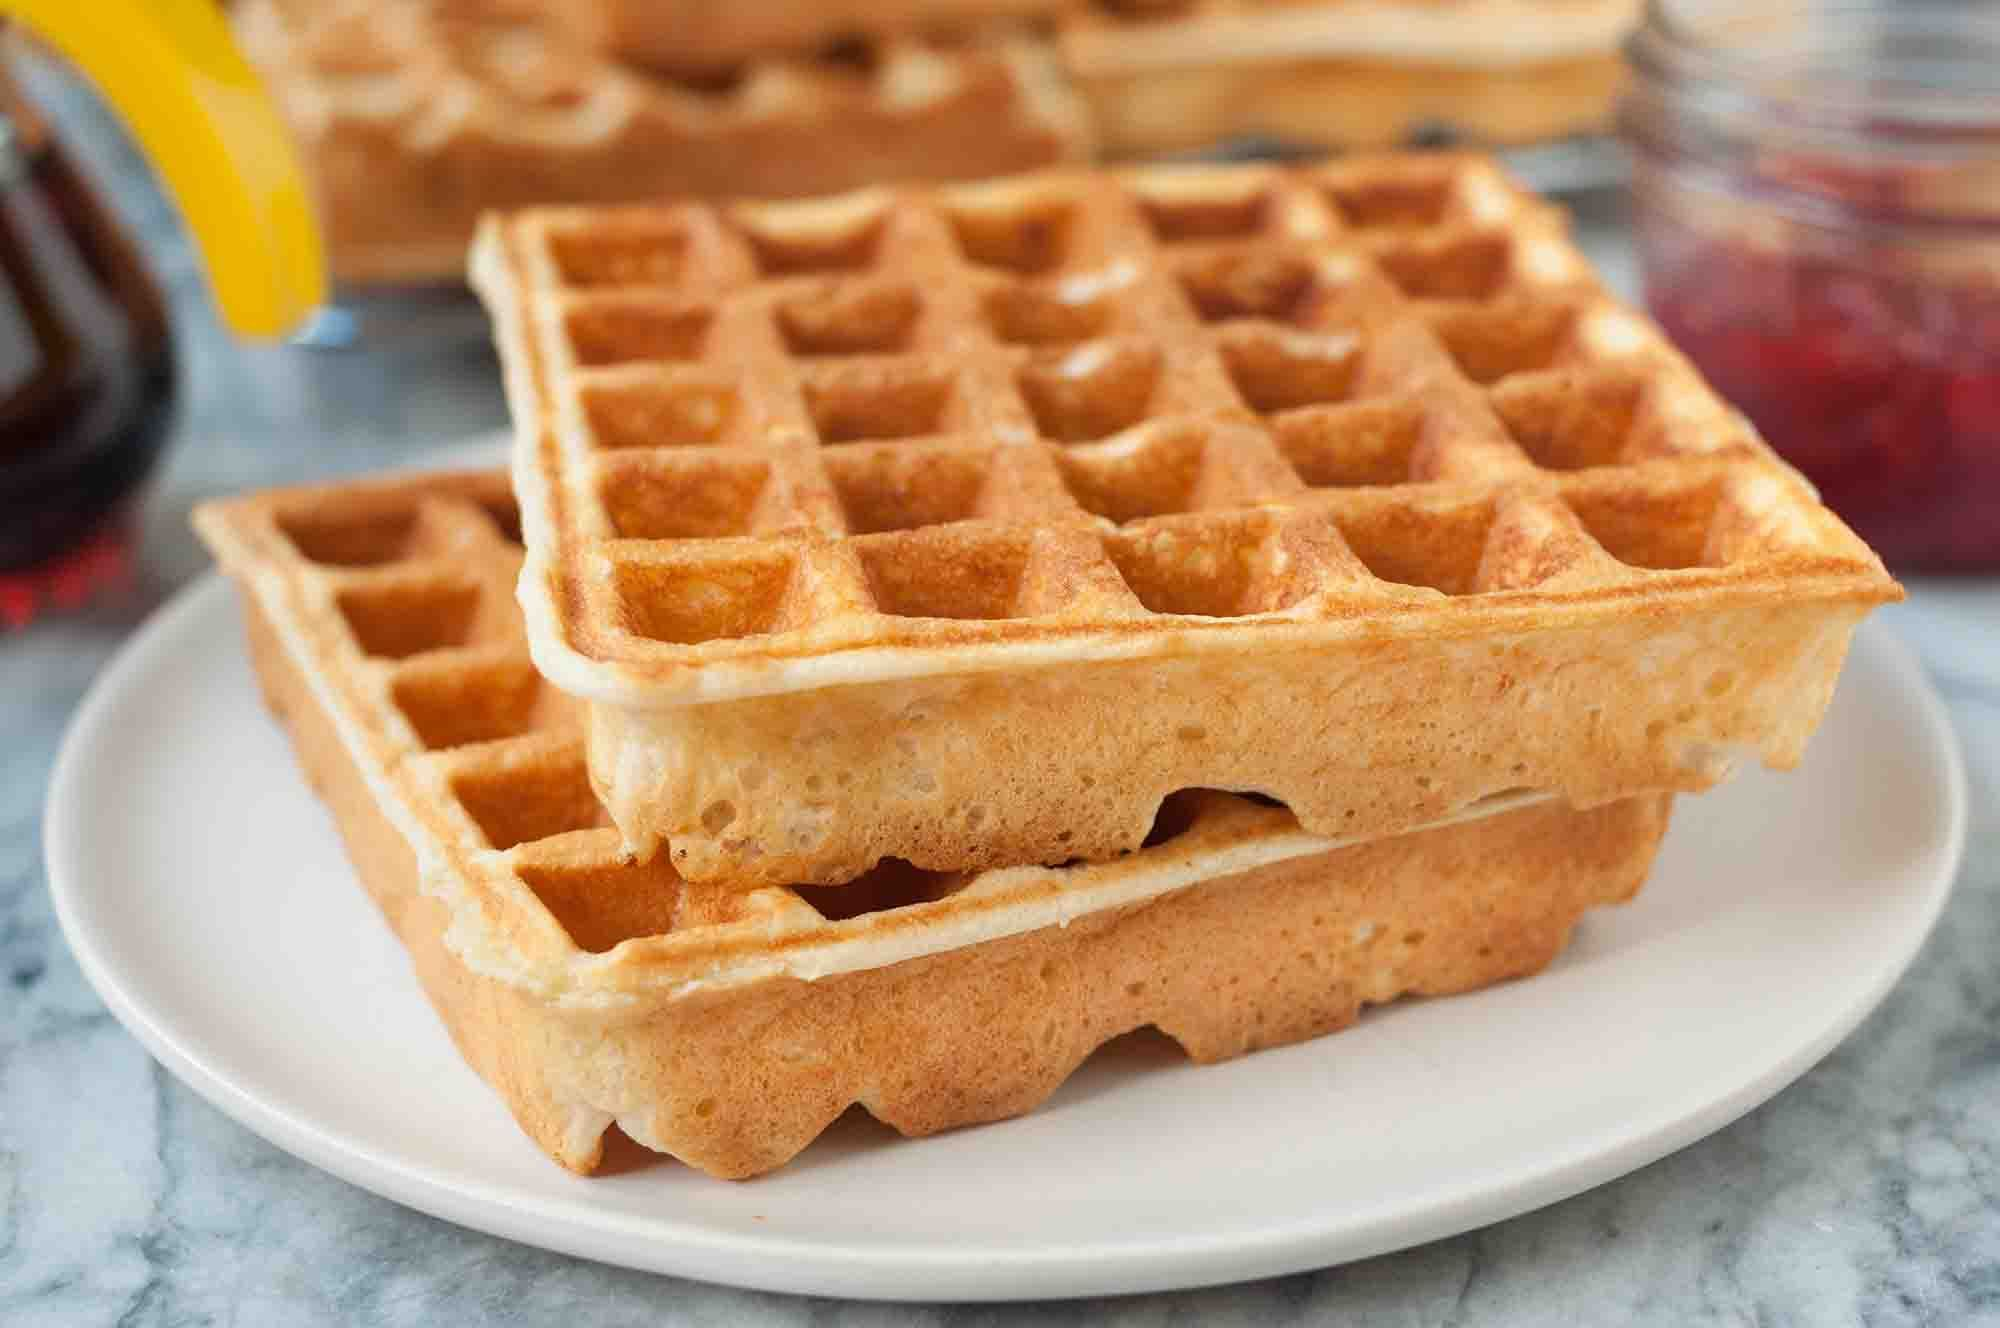 Classic Buttermilk Waffles Classic Buttermilk Waffles Light And Crispy Outside Tender In The Middle No Homemade Waffles Waffle Recipes Best Waffle Recipe